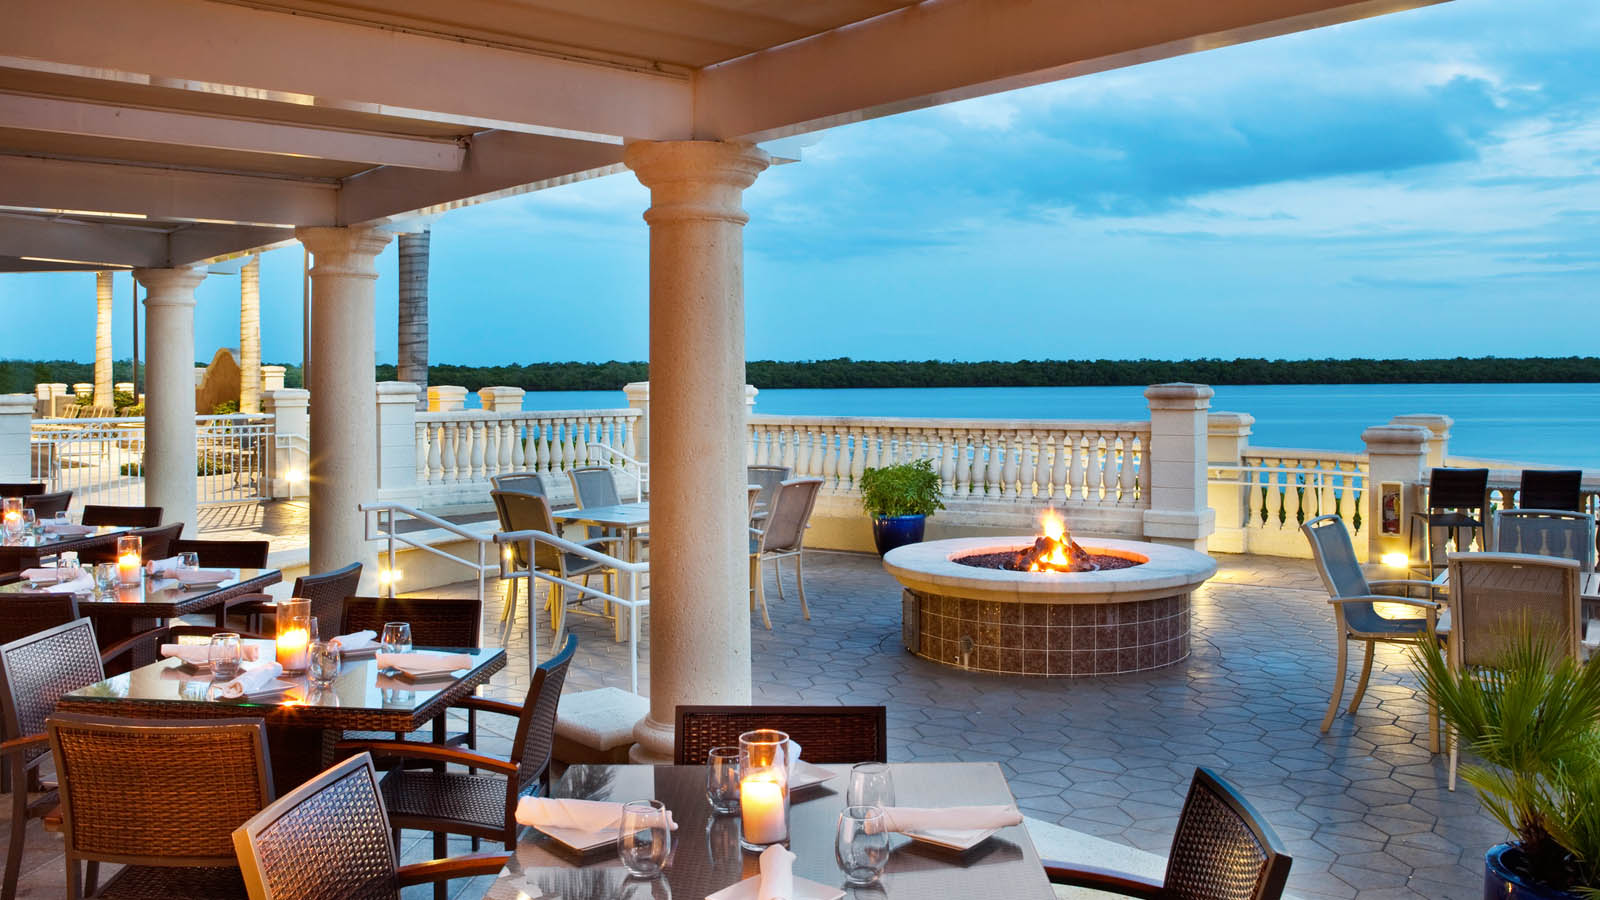 Nauti Mermaid Restaurant | The Westin Cape Coral Resort at Marina Village